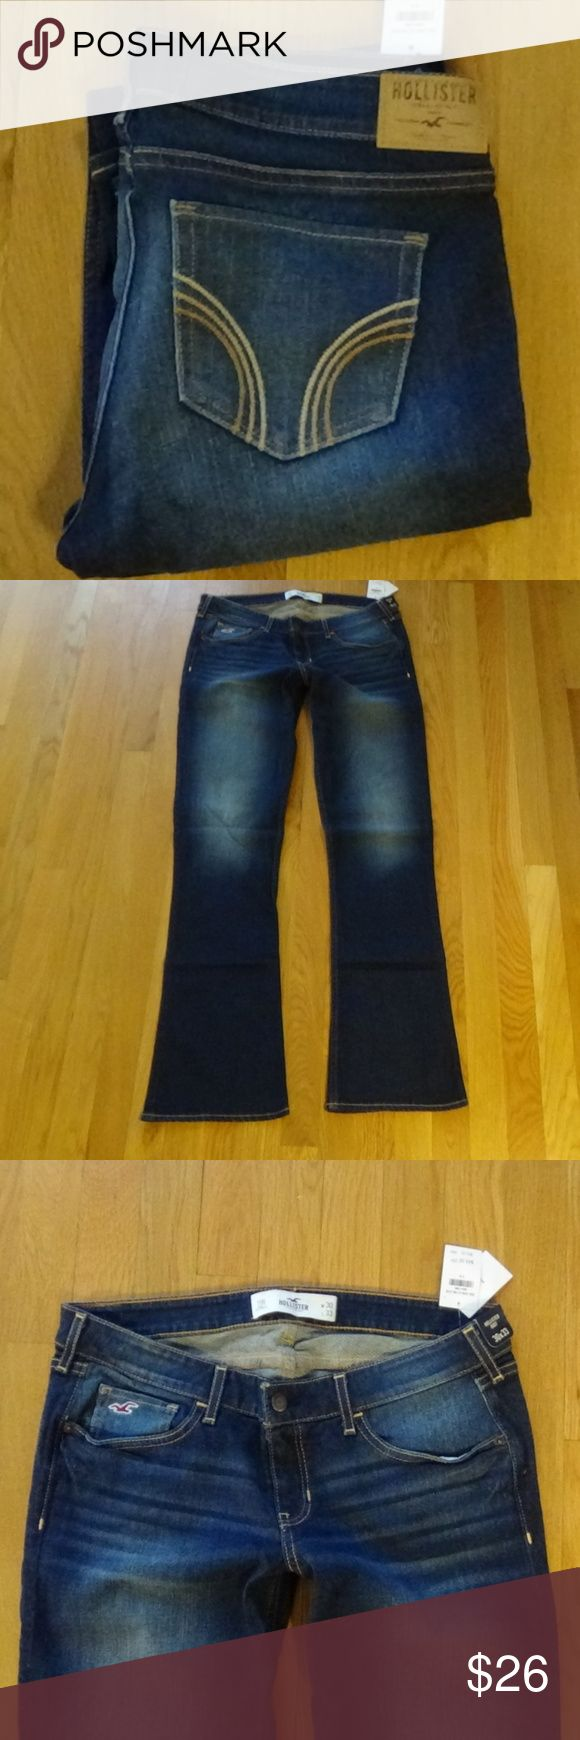 """NWT Sexy Hollister Boot Jeans - 11 R NWT Sexy Hollister Boot Jeans - 11 R - 98% Cotton; 2% Elastine - Waist 33""""; Rise 7 1/2""""; Inseam 33""""  Please don't ask about different pricing in the comments - I will not discuss this in this area. Please use the OFFER button to make any offer as this shows your commitment to stand behind your negotiation. I may accept the offer, I may counteroffer, or decline. Hollister Jeans Boot Cut"""